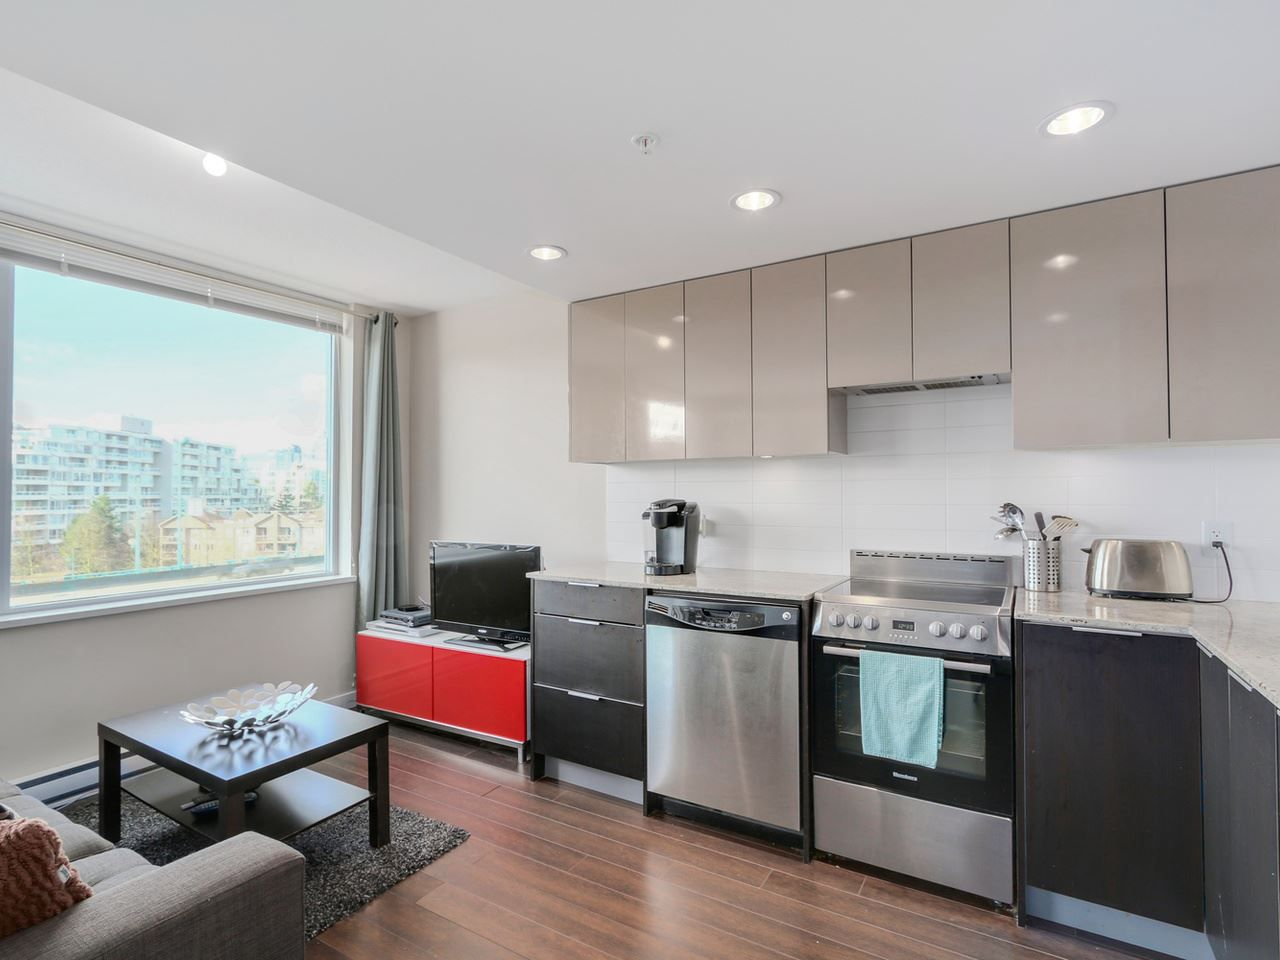 """Main Photo: 612 445 W 2ND Avenue in Vancouver: False Creek Condo for sale in """"Maynard's Block"""" (Vancouver West)  : MLS®# R2034960"""